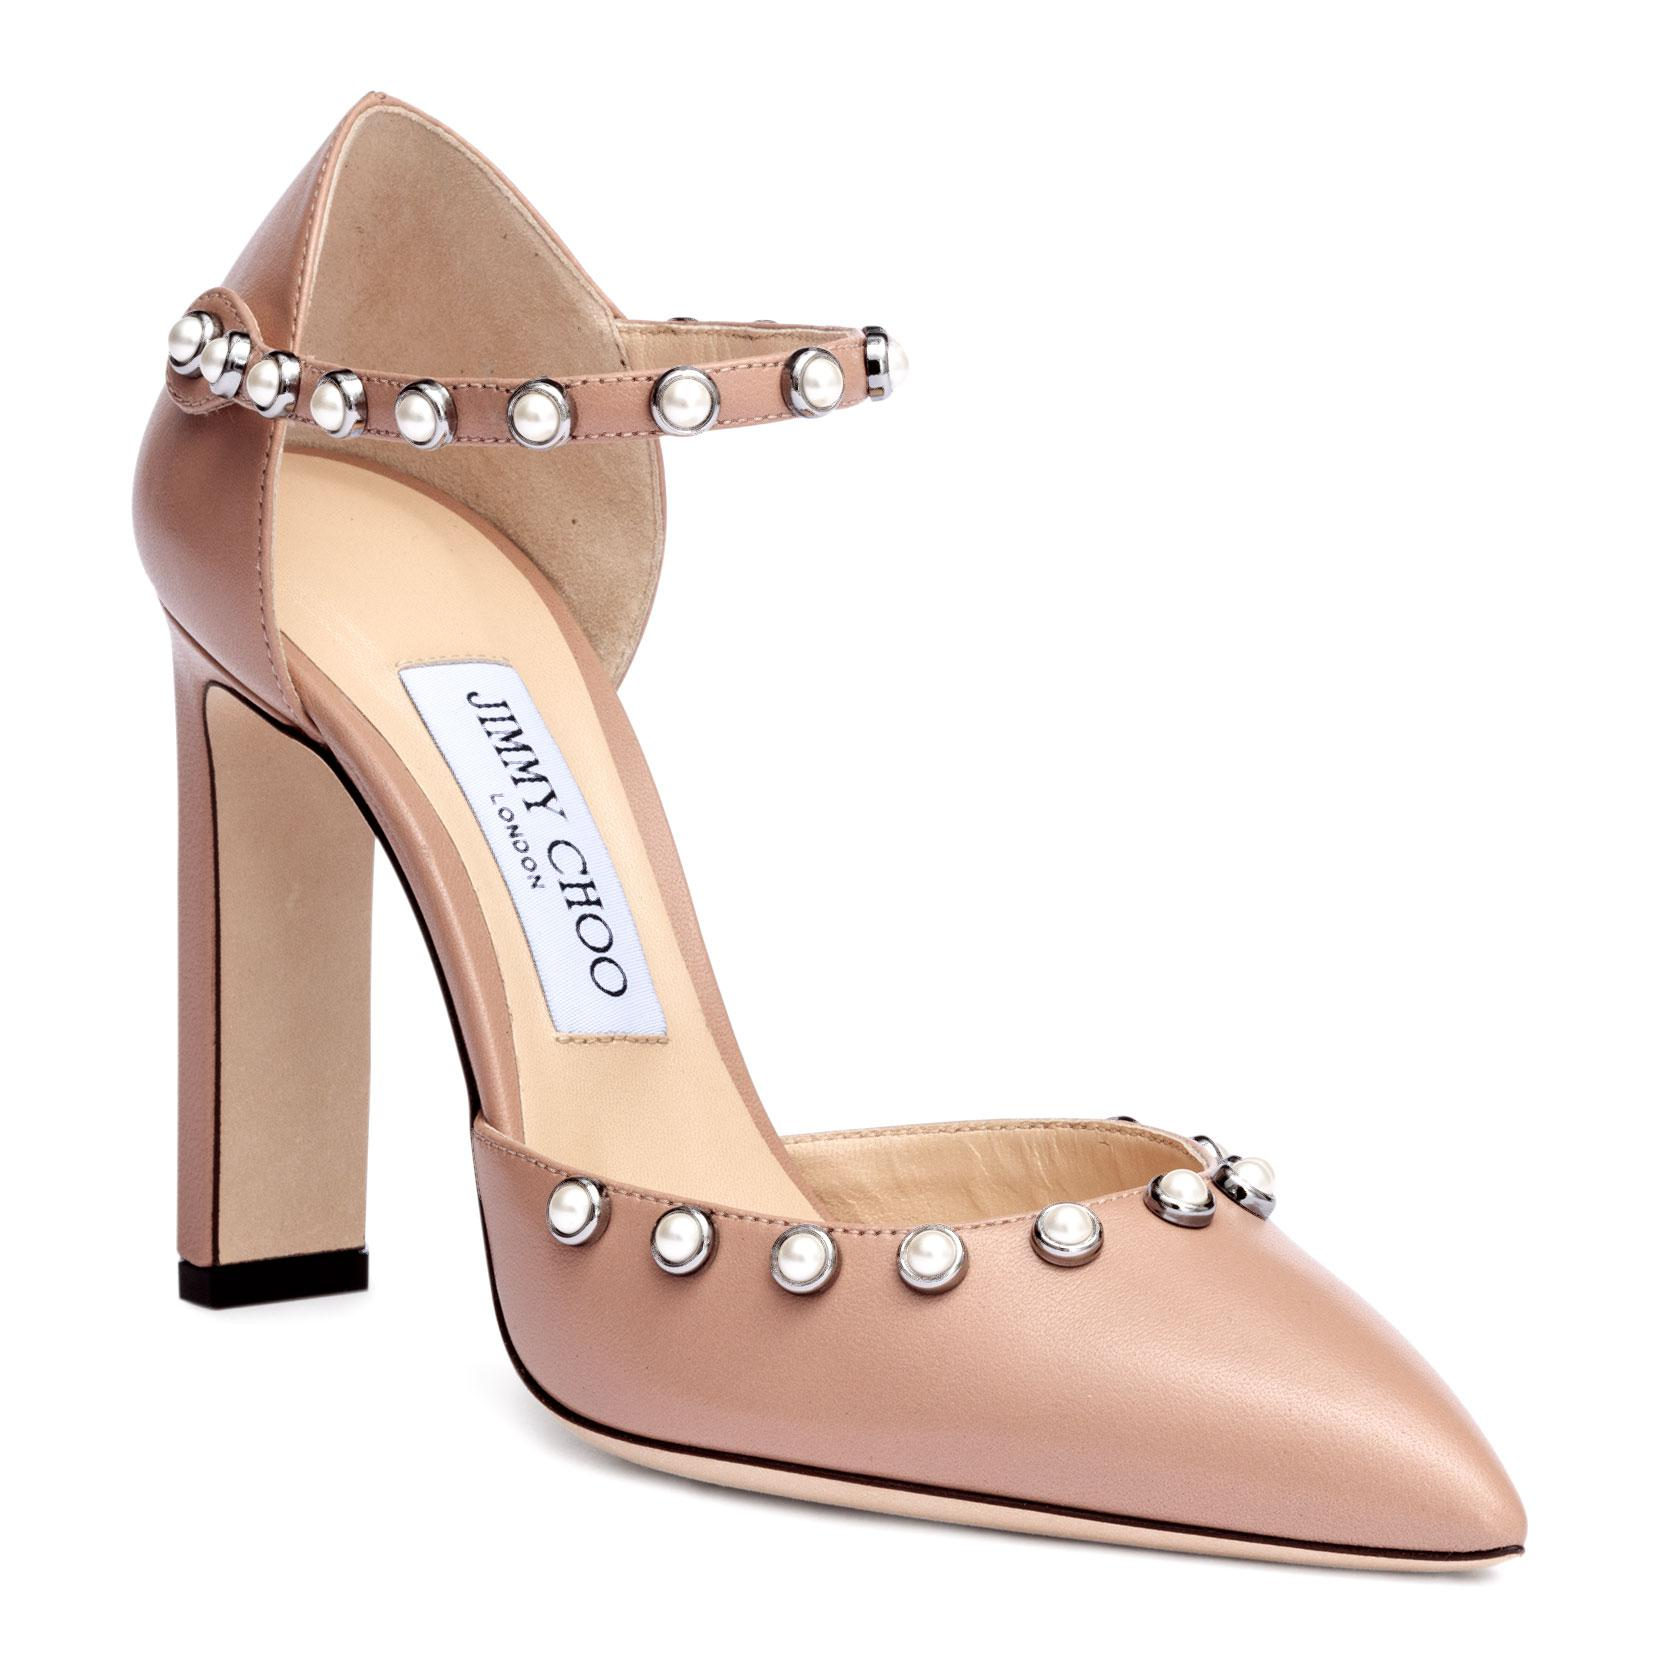 Lou Mid Pumps with Ankle Strap in Ballet Pink Shiny Smooth Leather Jimmy Choo London Fashion Style Cheap Online JCSbUq1cy